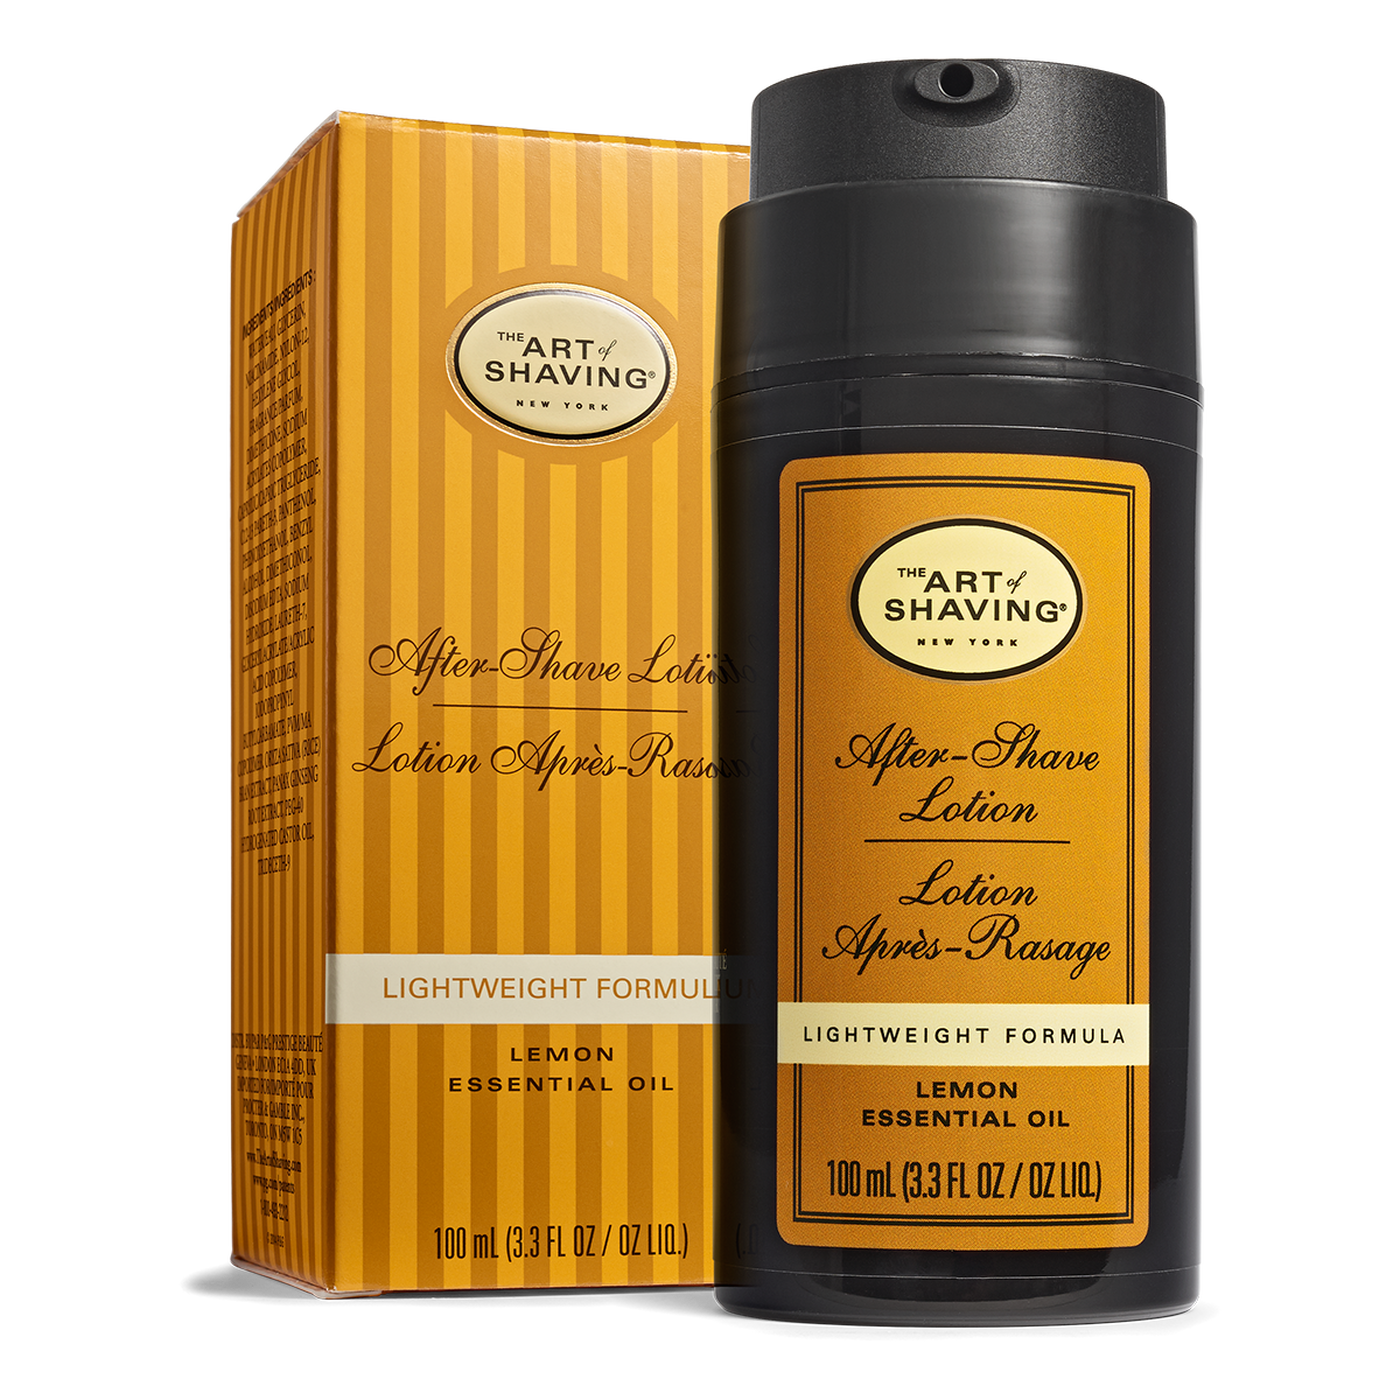 The Art Of Shaving: After Shave Lotion - Lemon